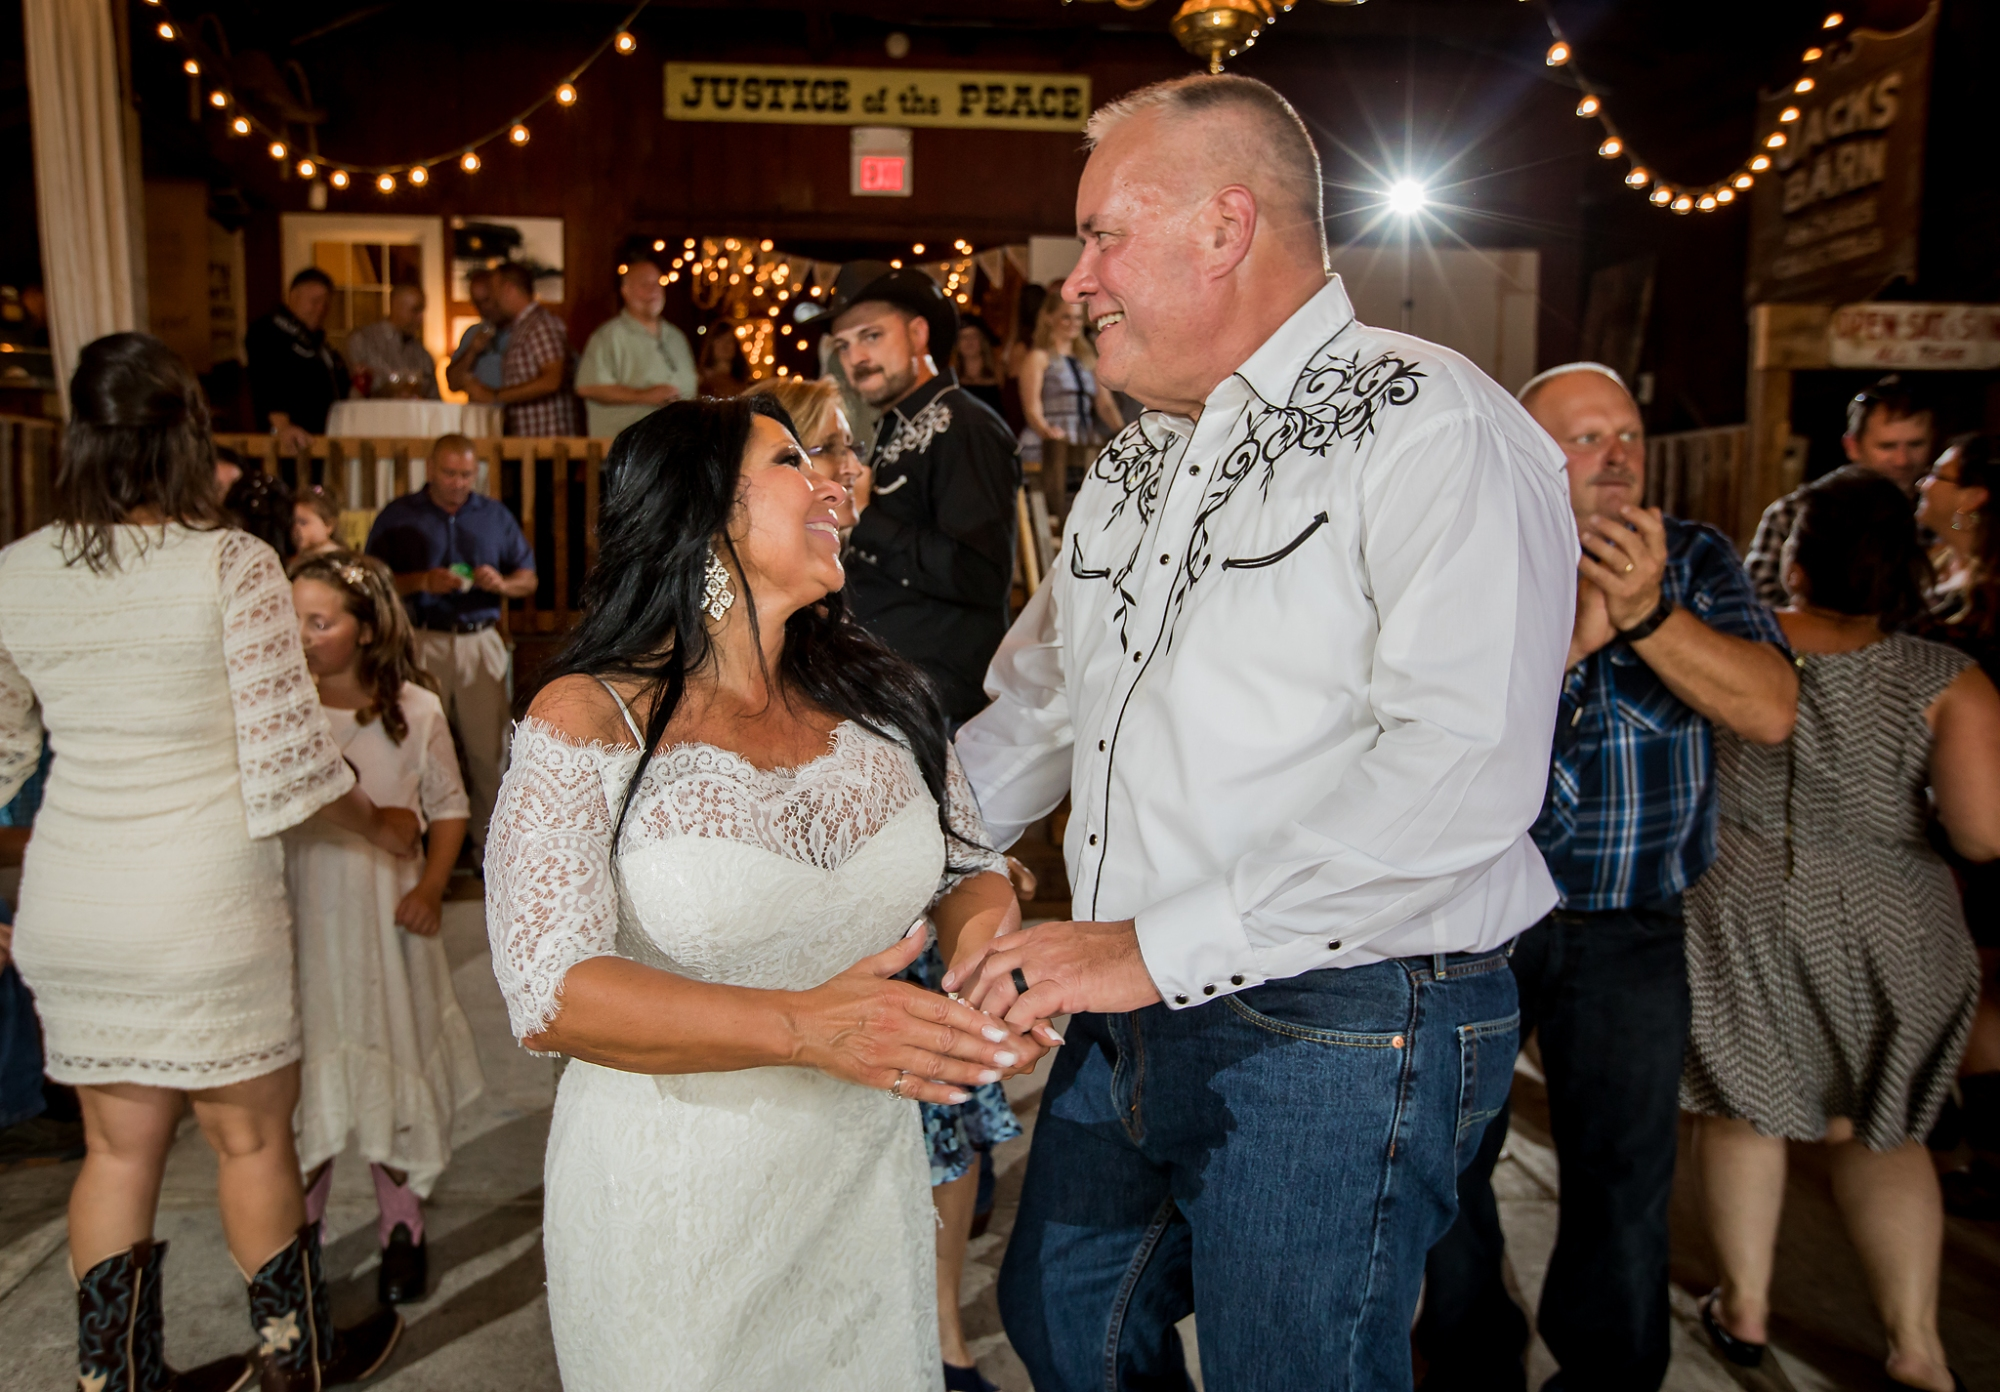 Jacks-Barn-Wedding-Janine-Collette-Photography76